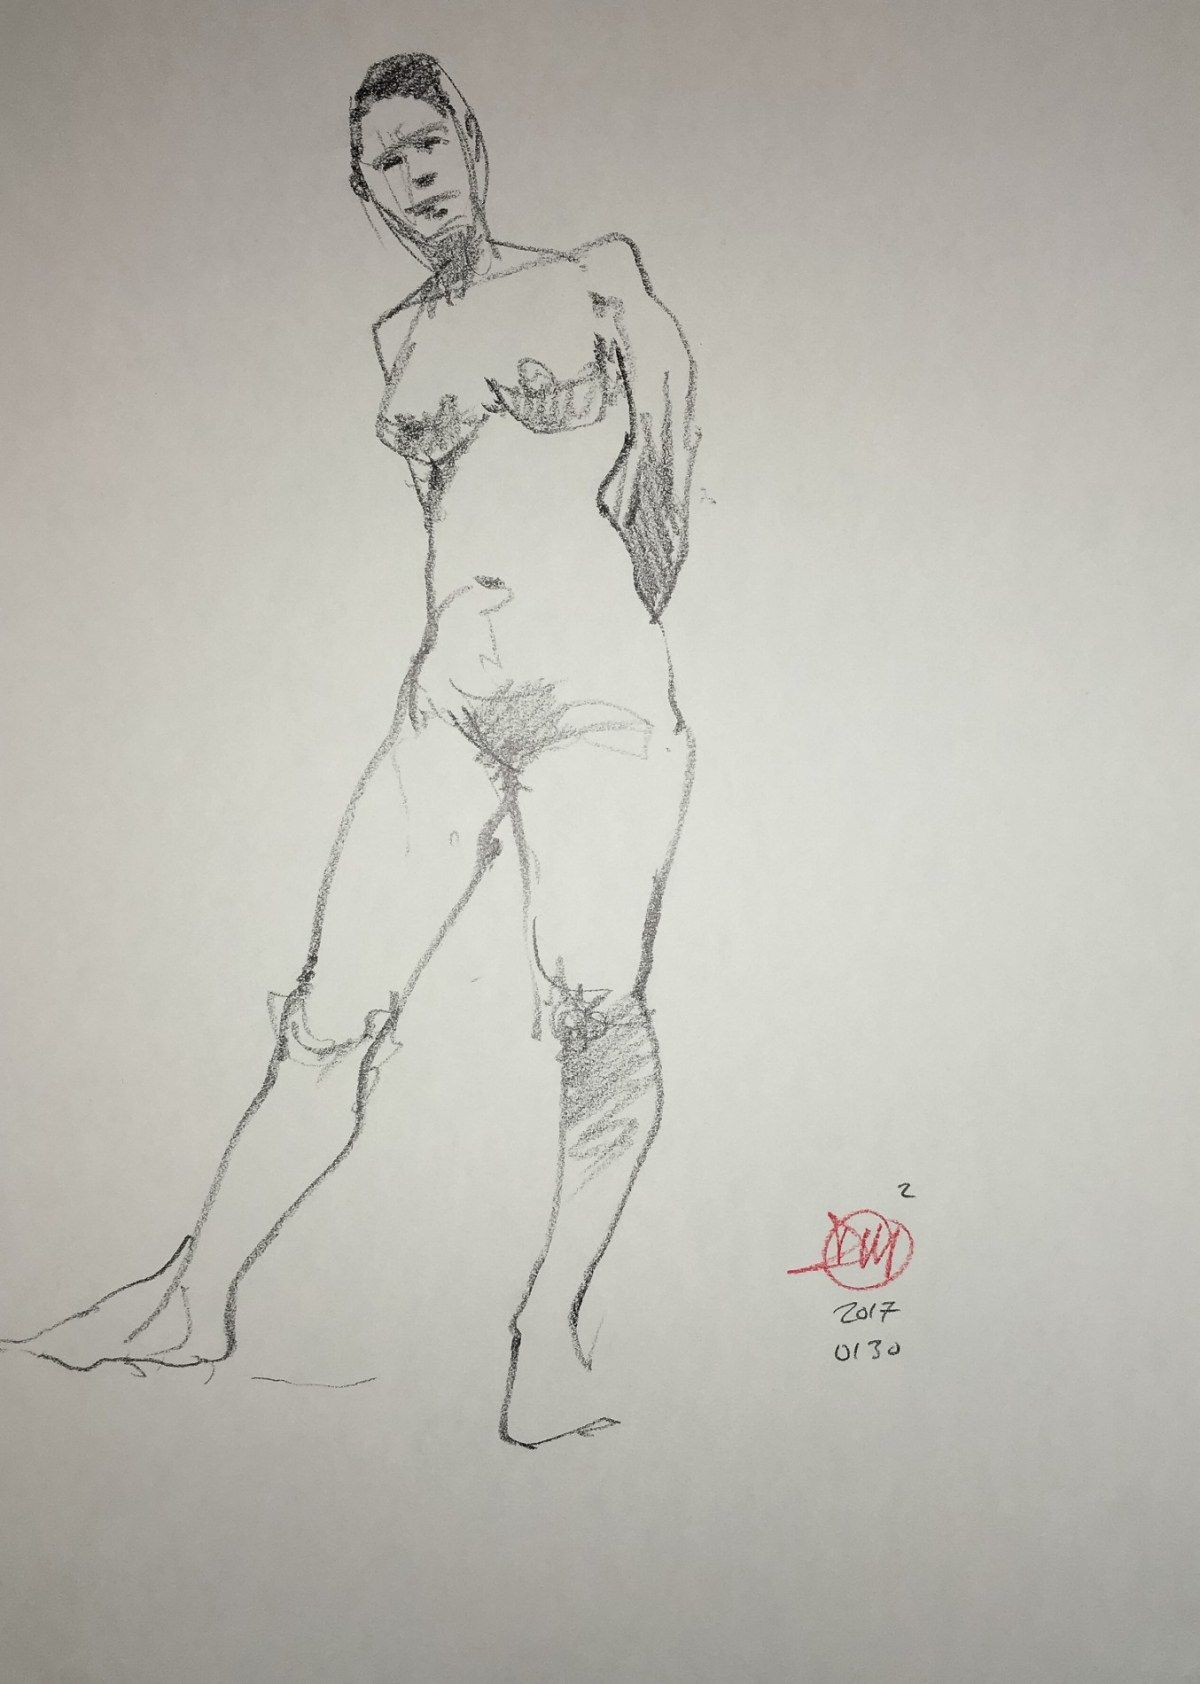 Monday'a life drawing